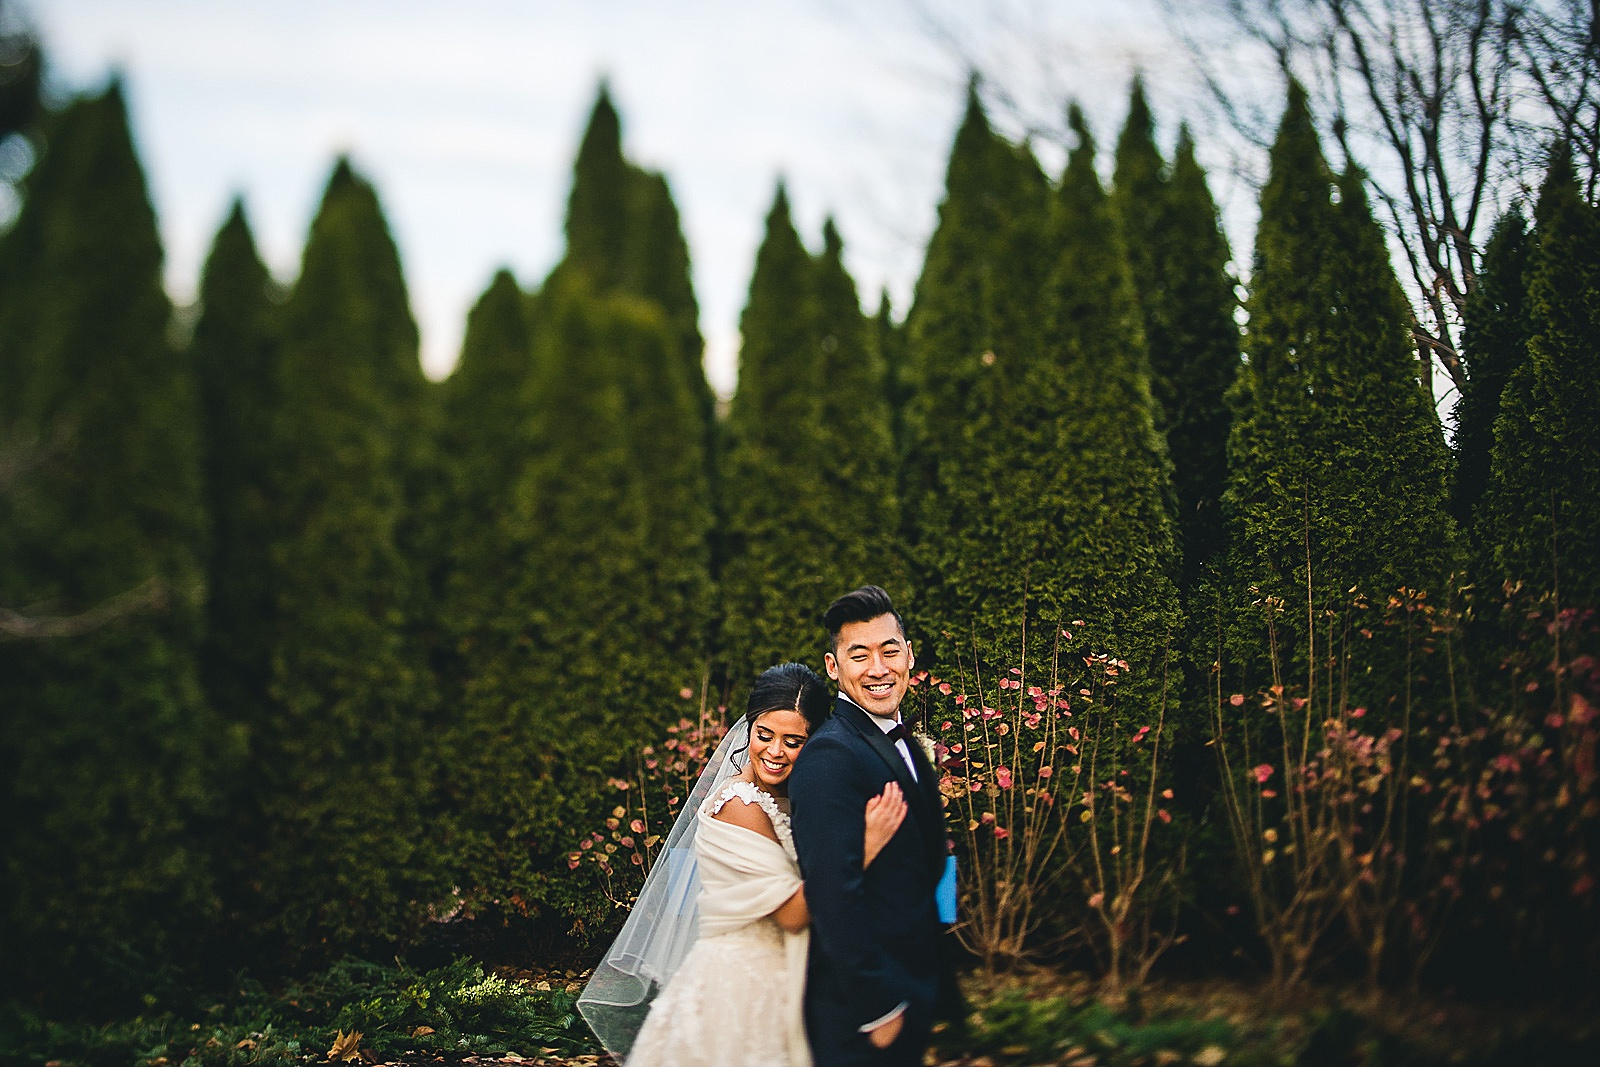 15 chicago wedding photography - Chicago Wedding Photography at Morton Arboretum // Alex + Tim